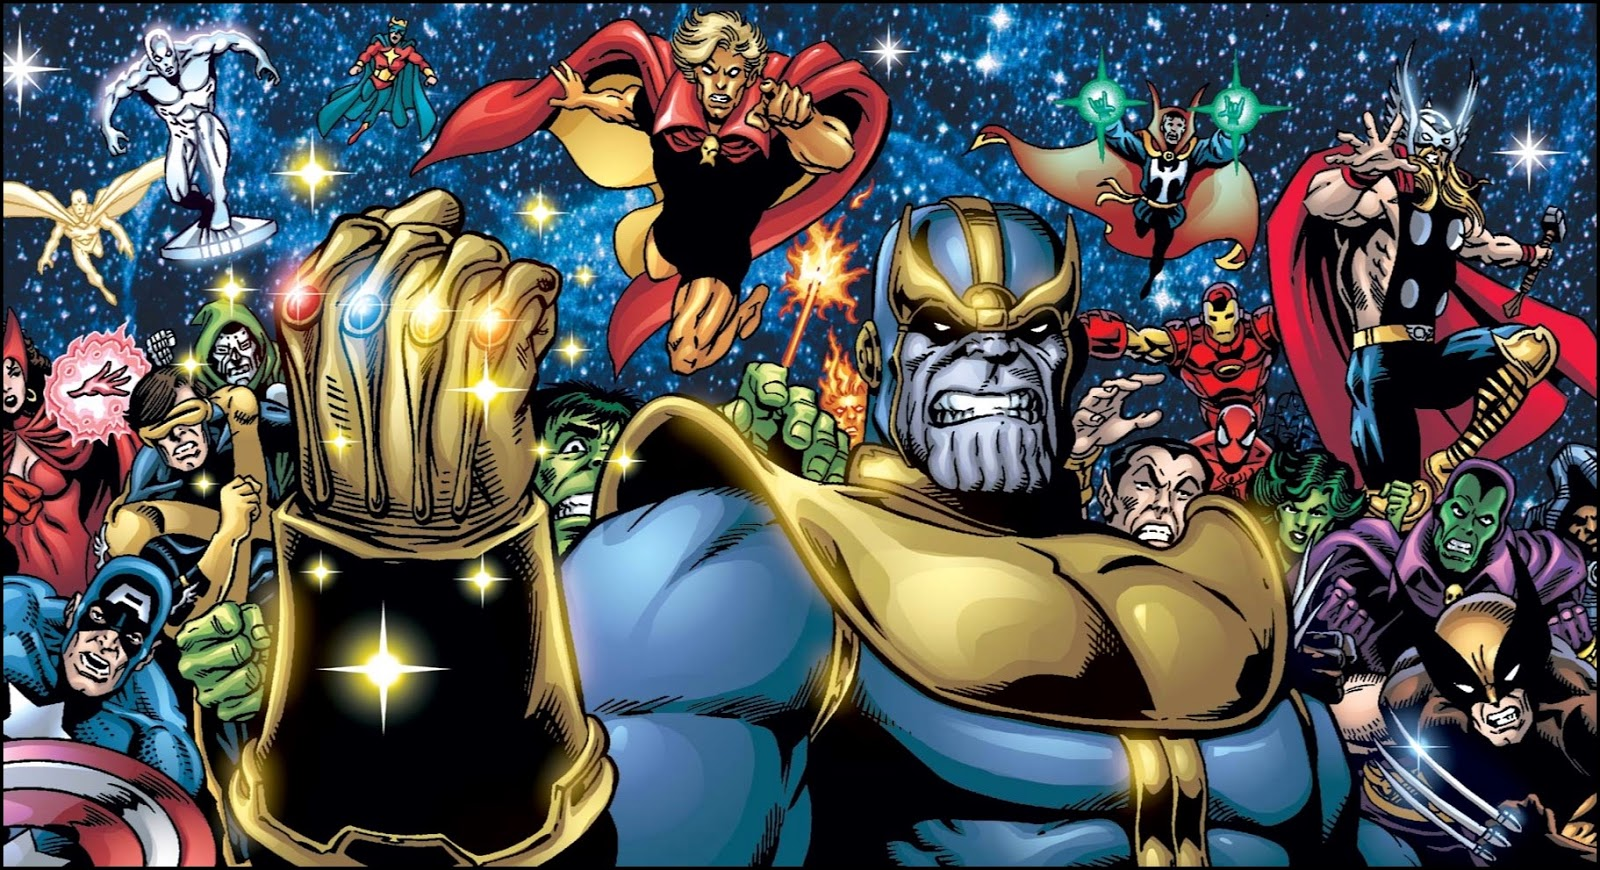 Thanos grimacing with raised Infinity Gauntlet fist surrounded by over a dozen characters